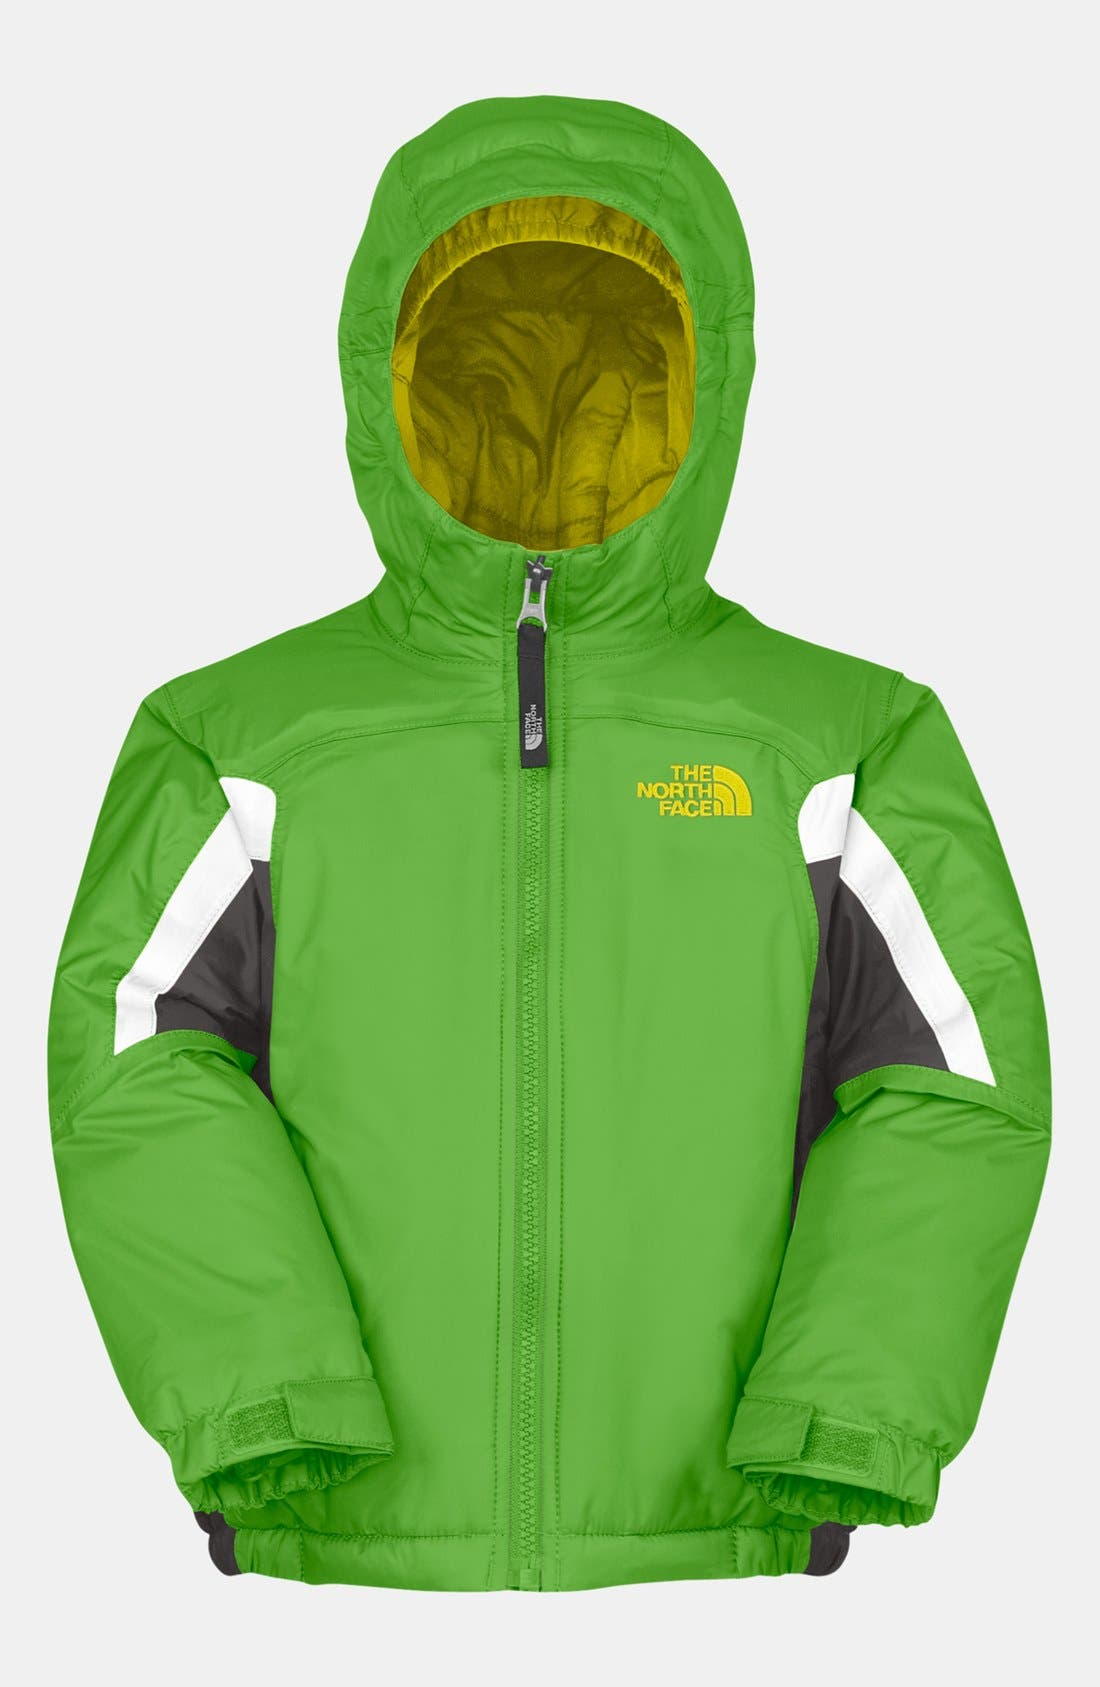 Main Image - The North Face 'Out of Bounds' Jacket (Toddler Boys)